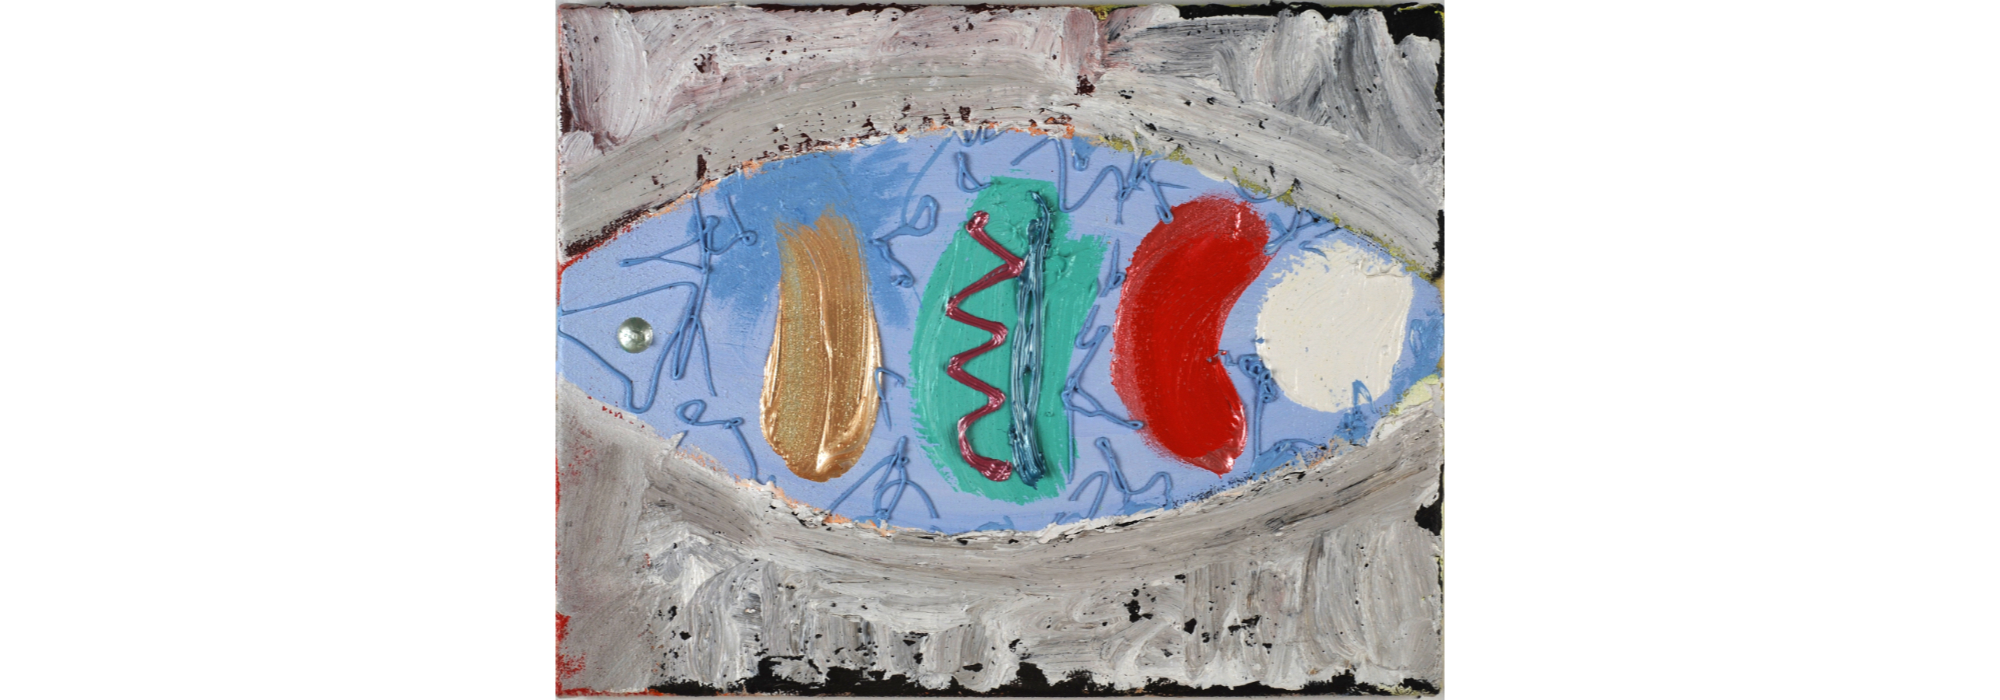 little eye by Pete Hoida